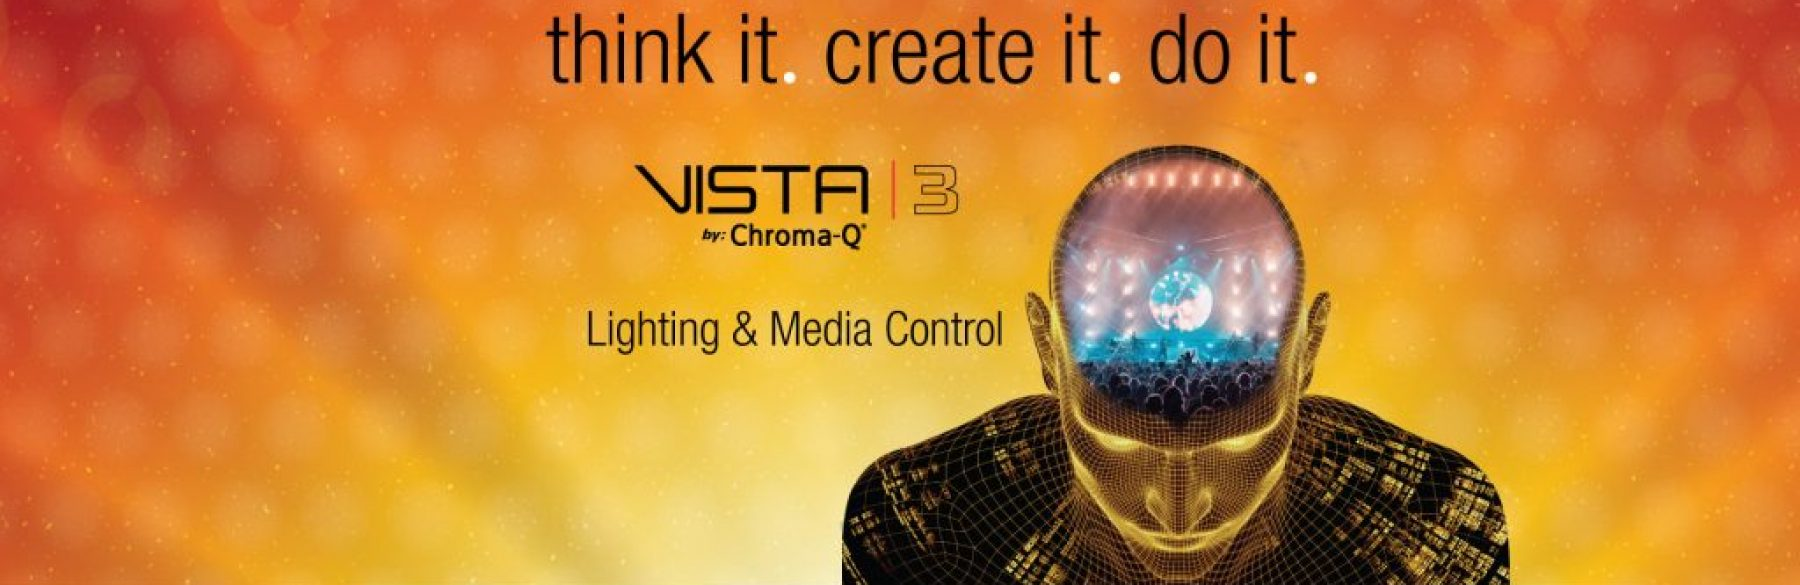 Vista 3 by Chroma-Q Software Release 2 is Now Live